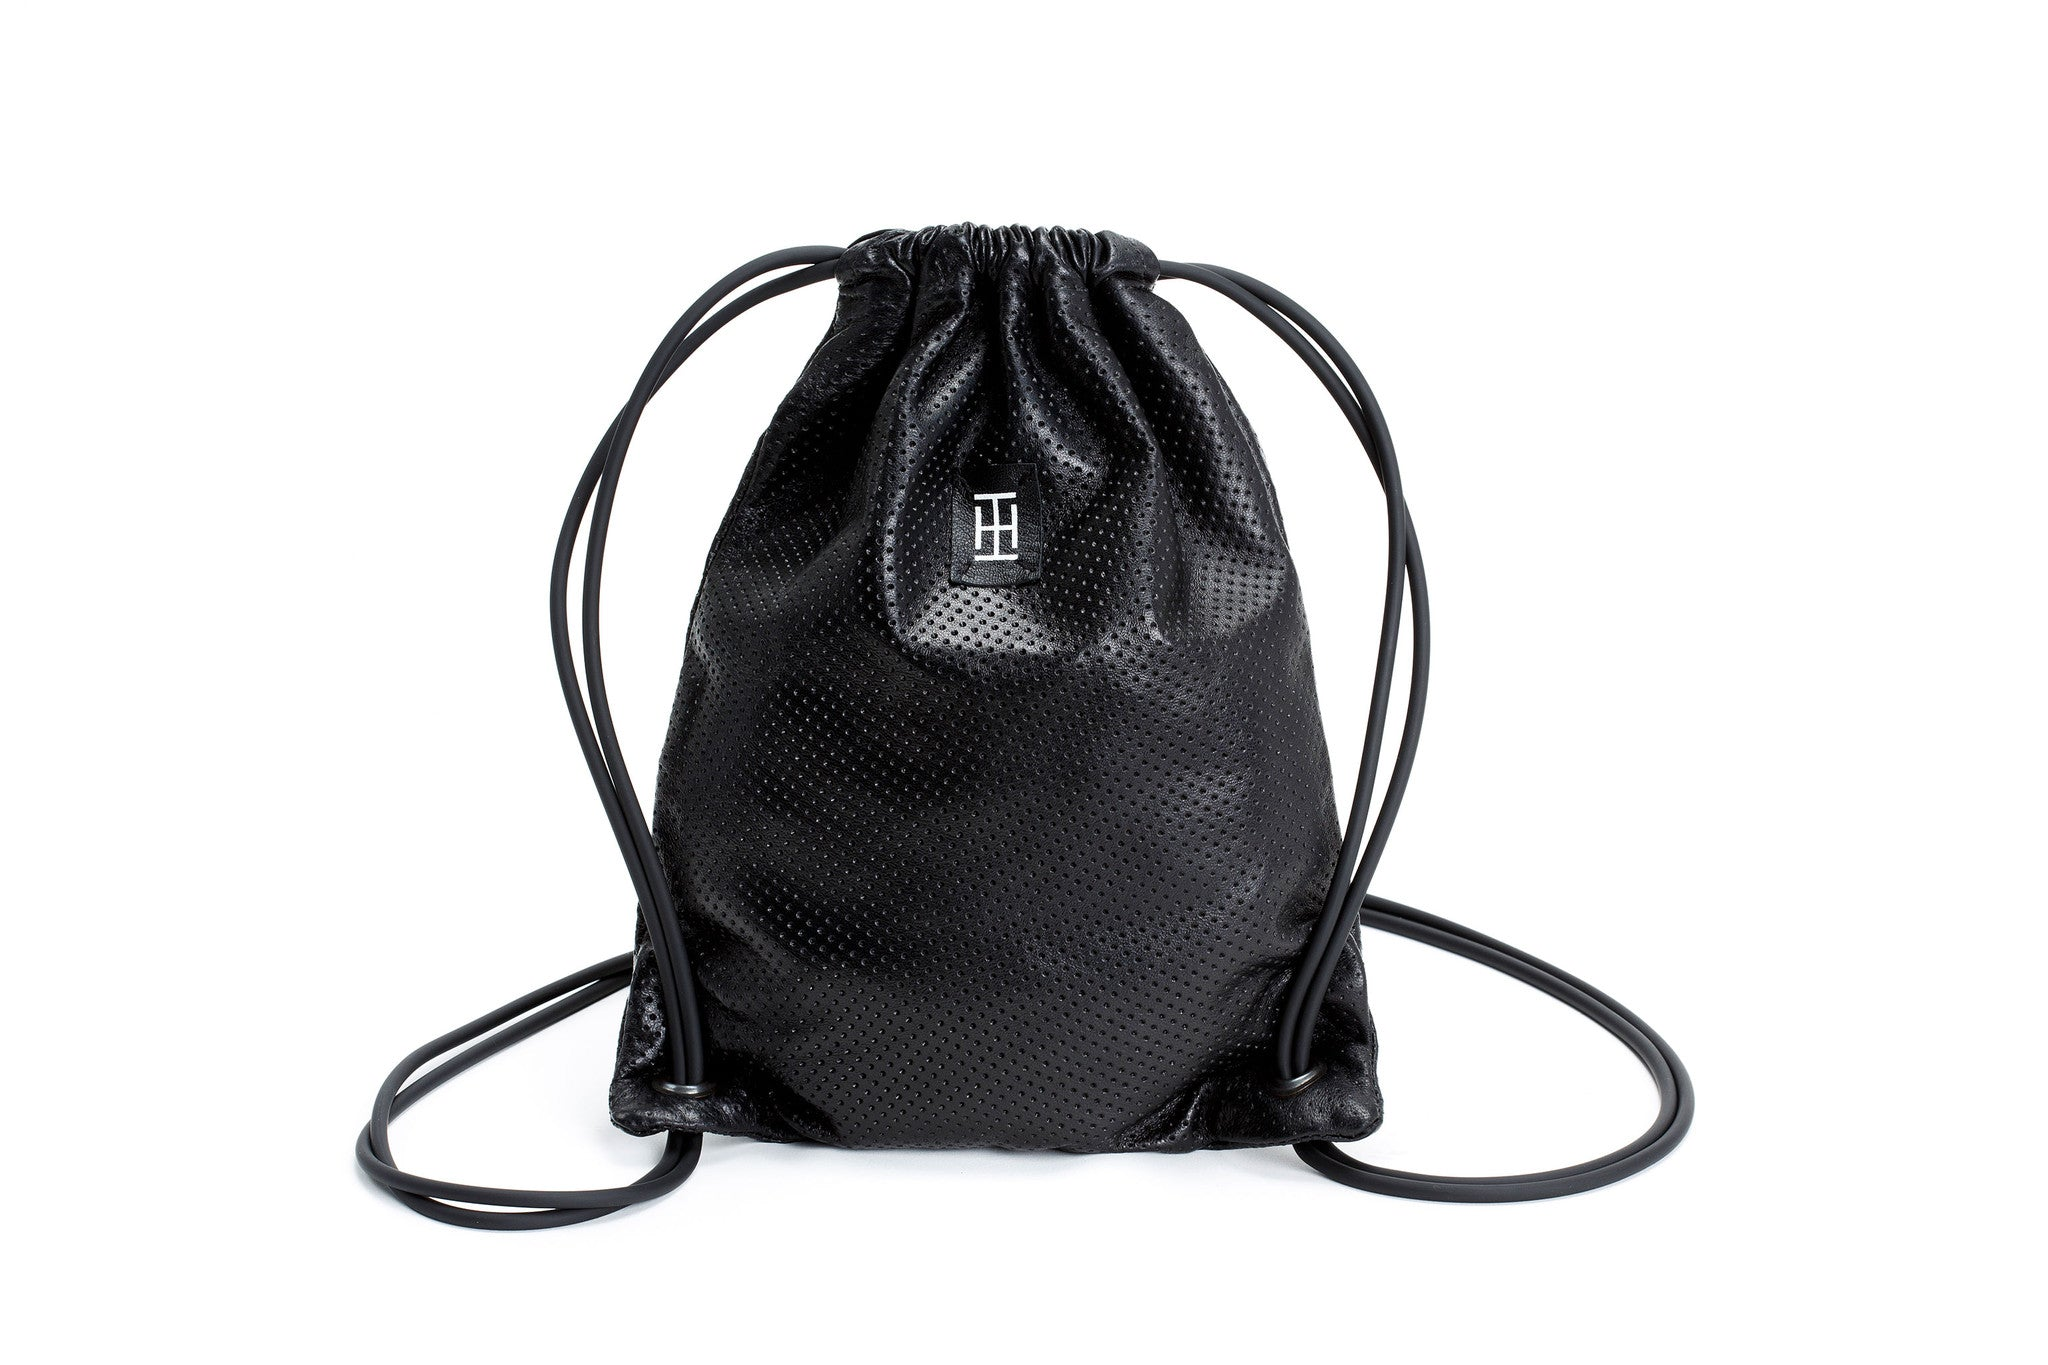 The Mini Sackpack- Black Leather Bag